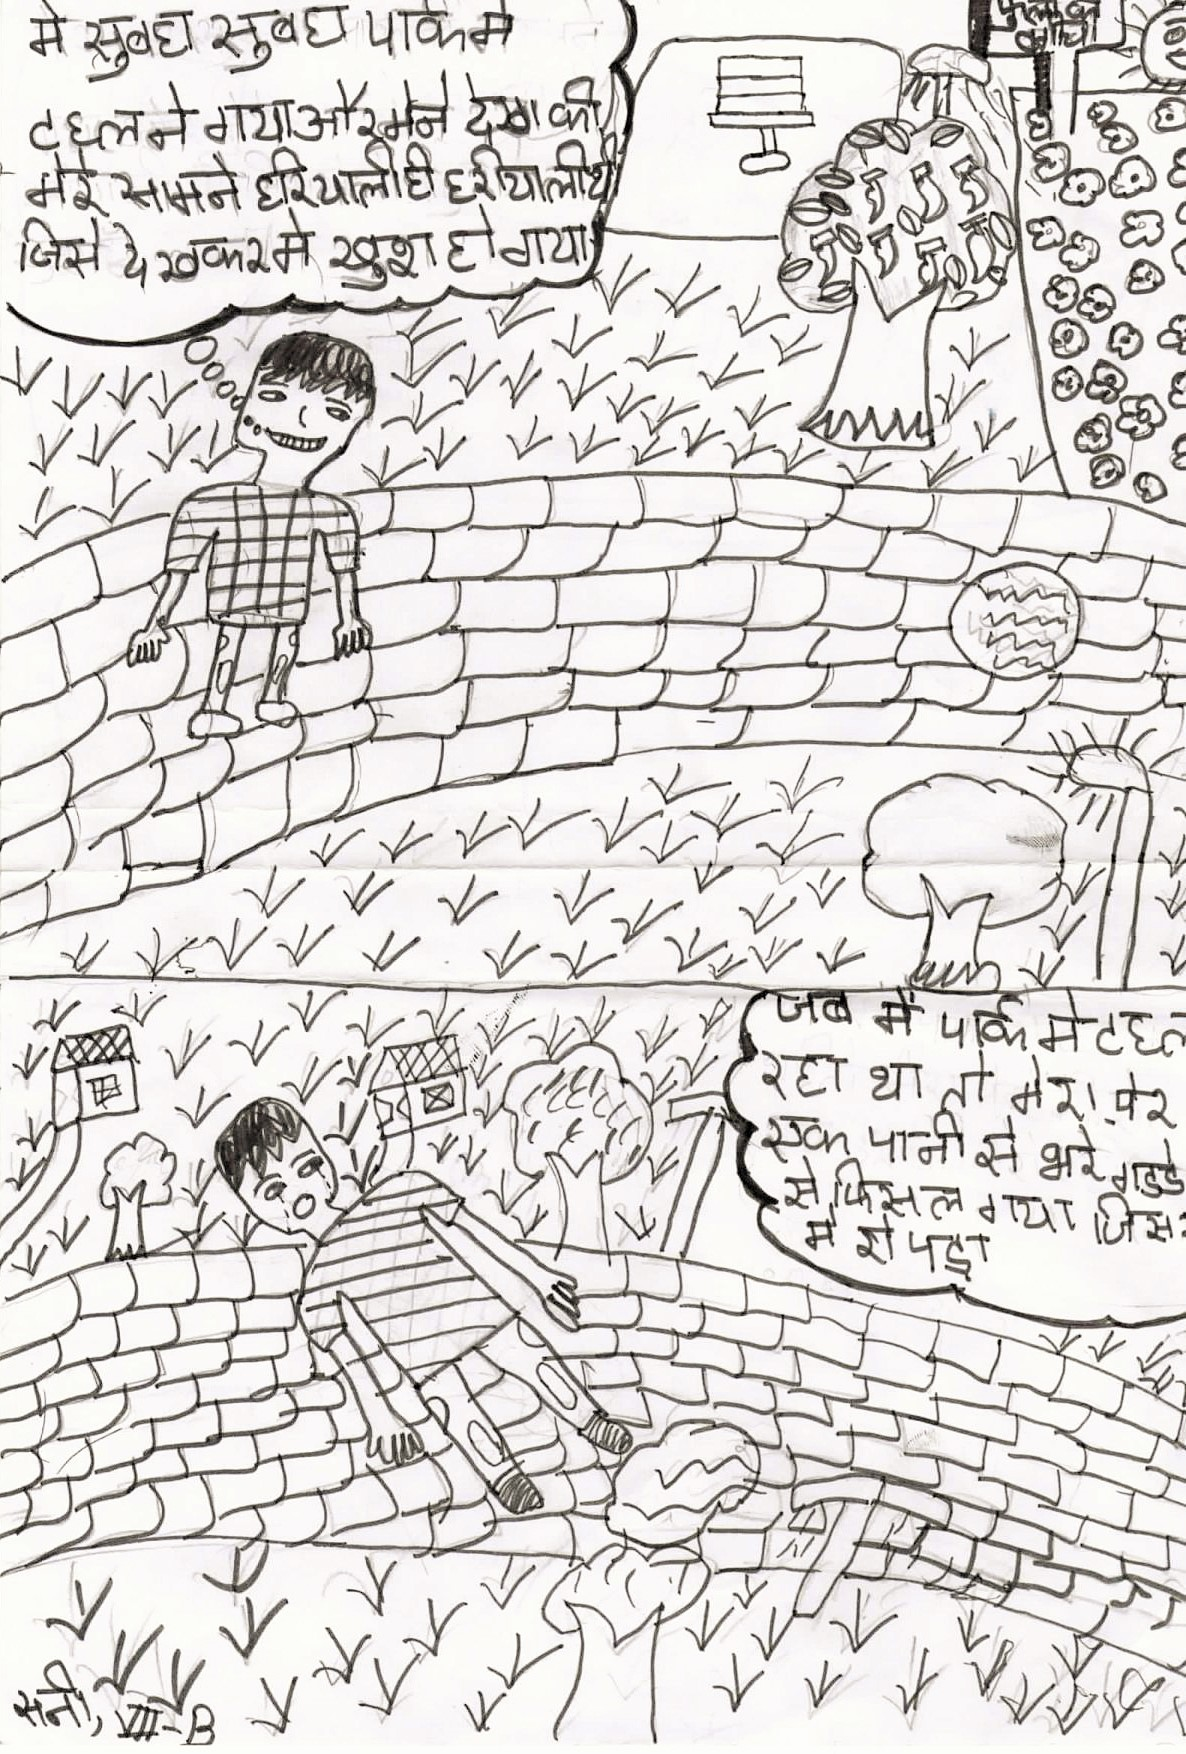 Dilshad_Garden_children_s_drawings_scanned-page-035.jpg